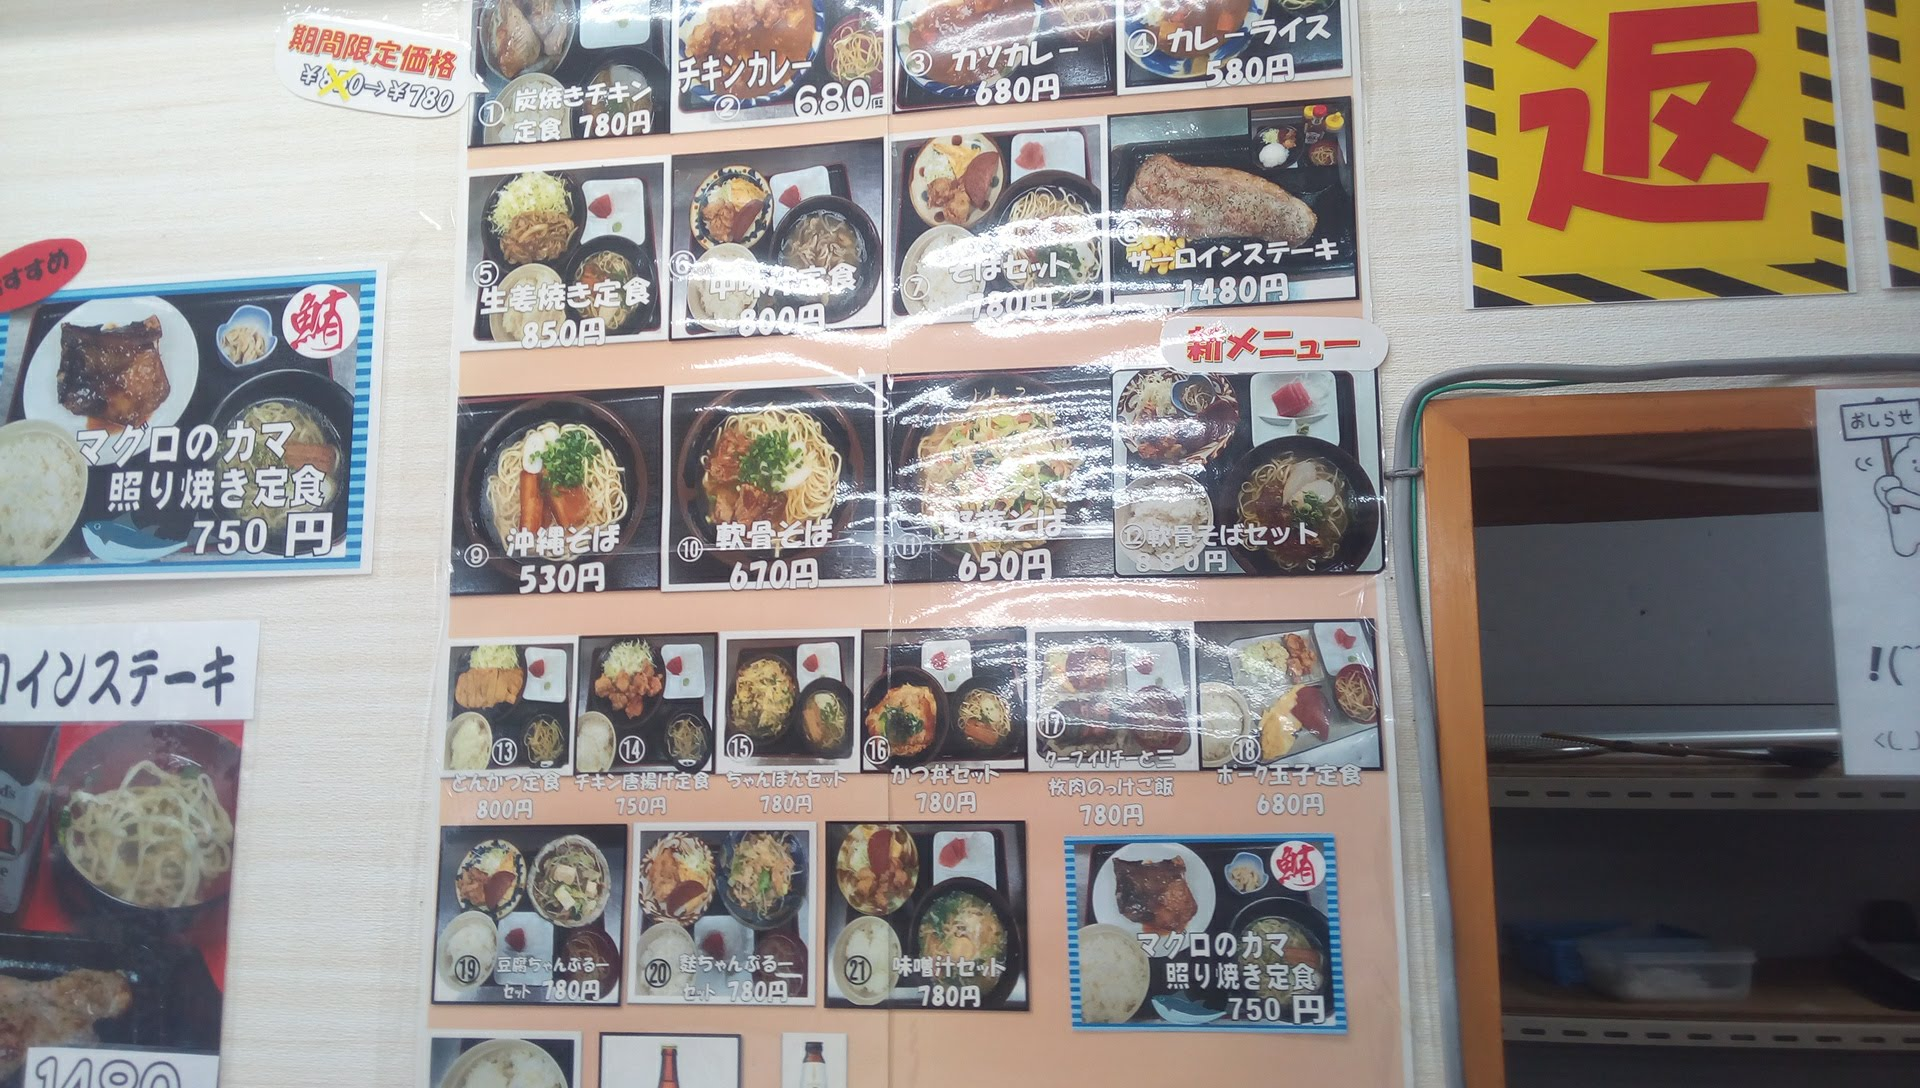 The menu of the Yachimun shokudou 1